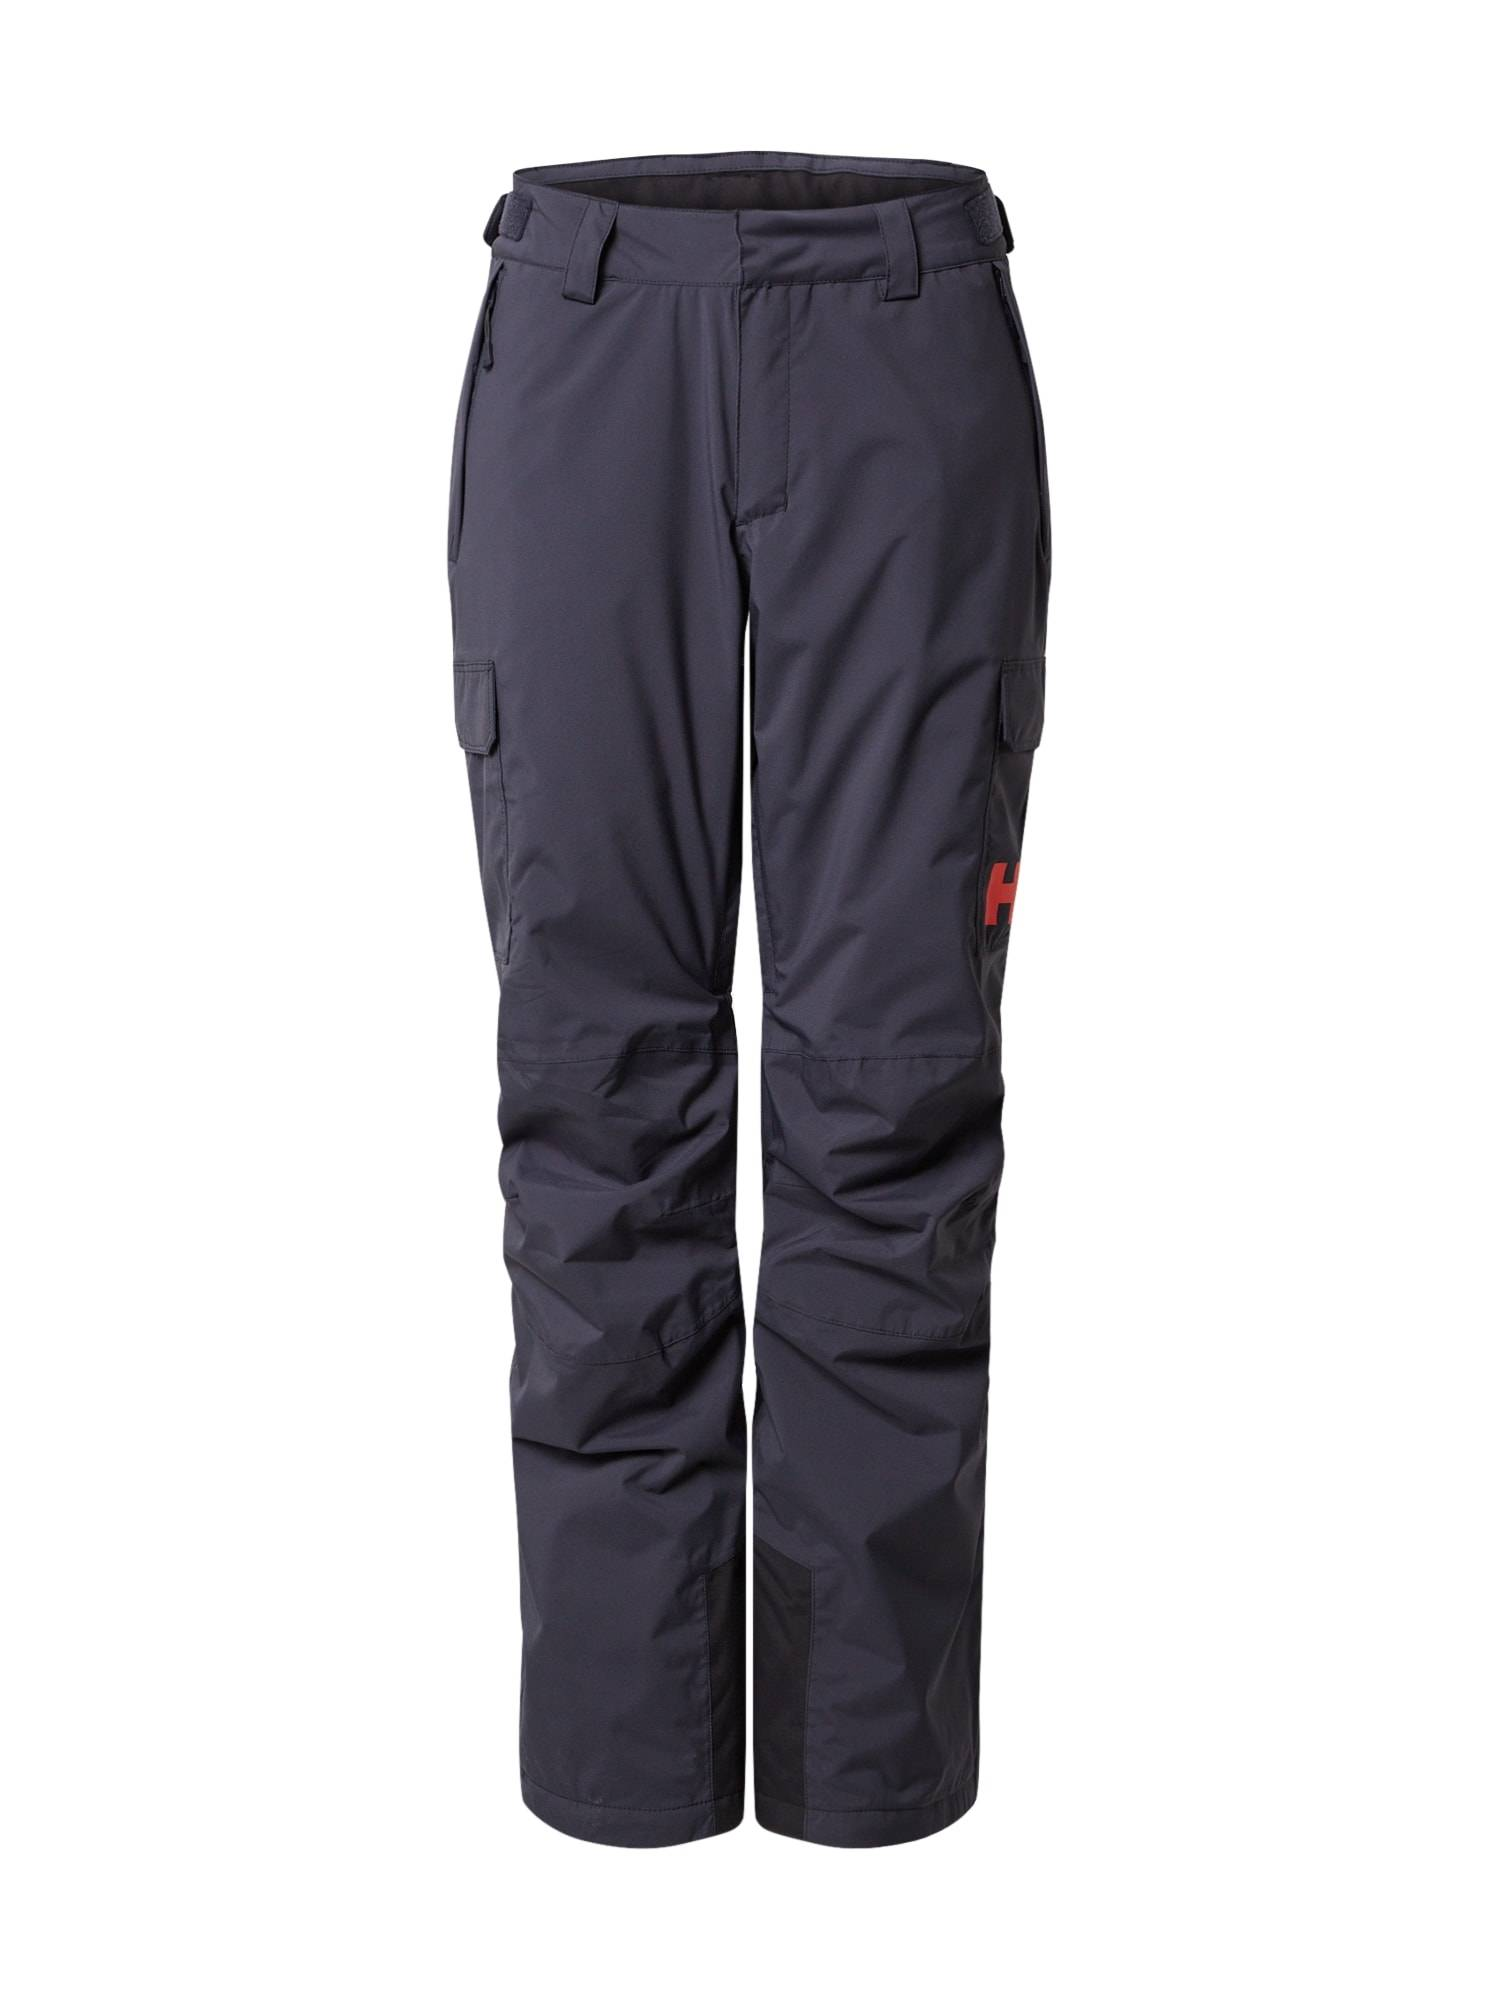 HELLY HANSEN Pantalon outdoor 'W SWITCH CARGO'  - Noir - Taille: XL - female